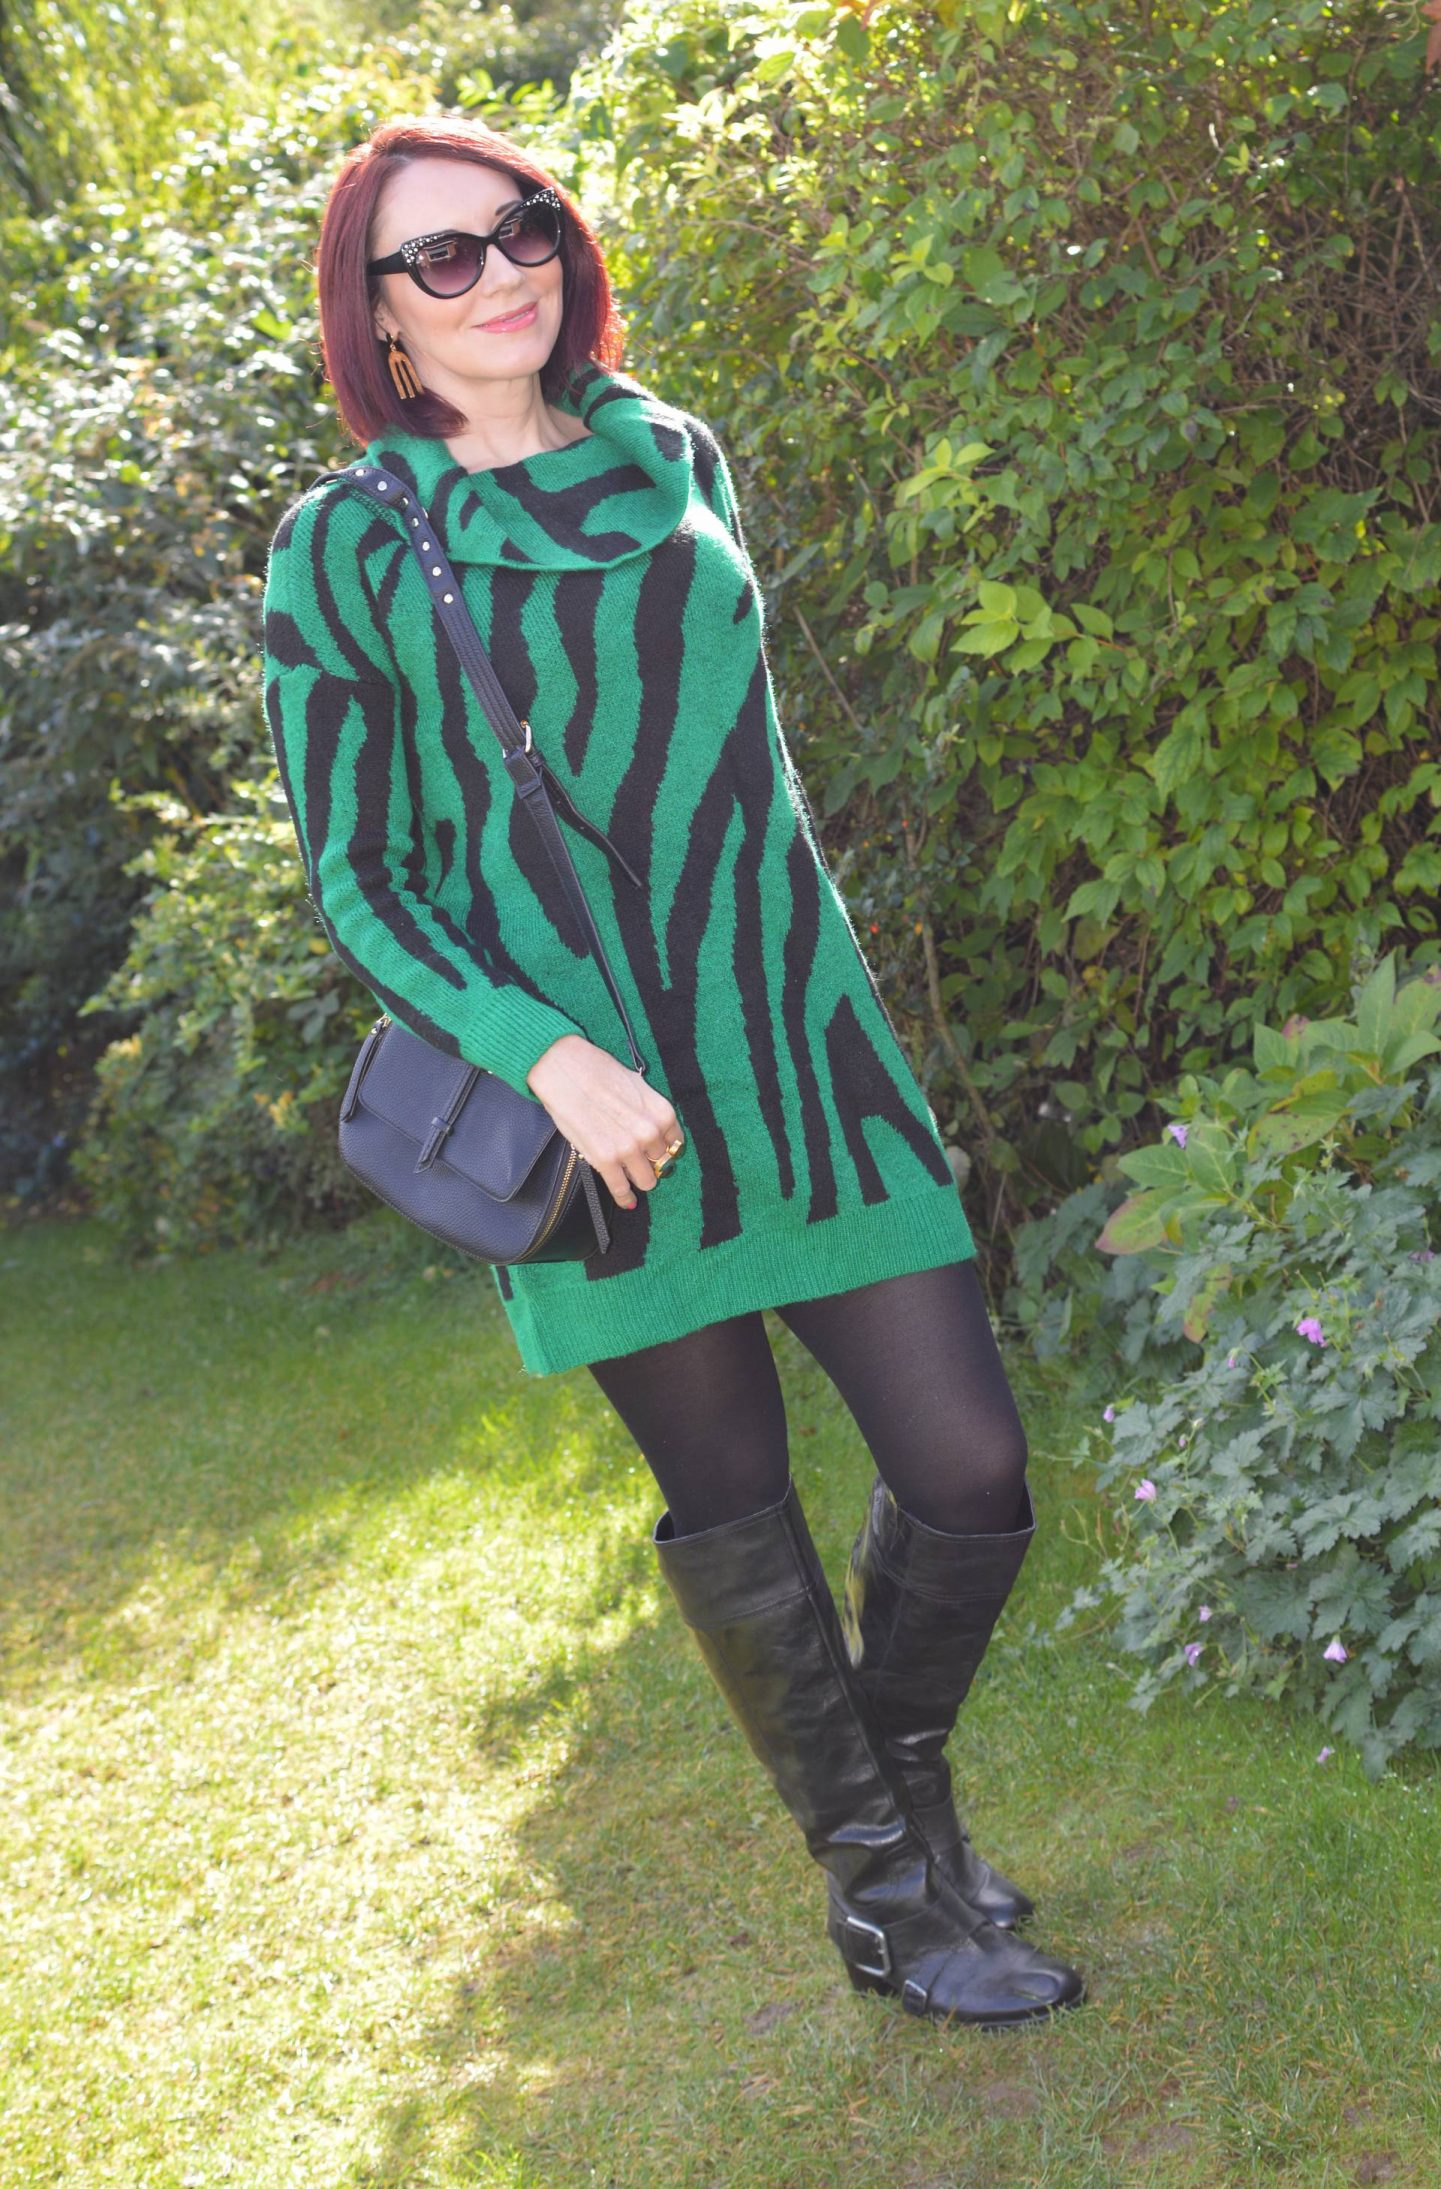 The Stylish Monday Sweater Edit, Bonmarche green zebra print tunic sweater